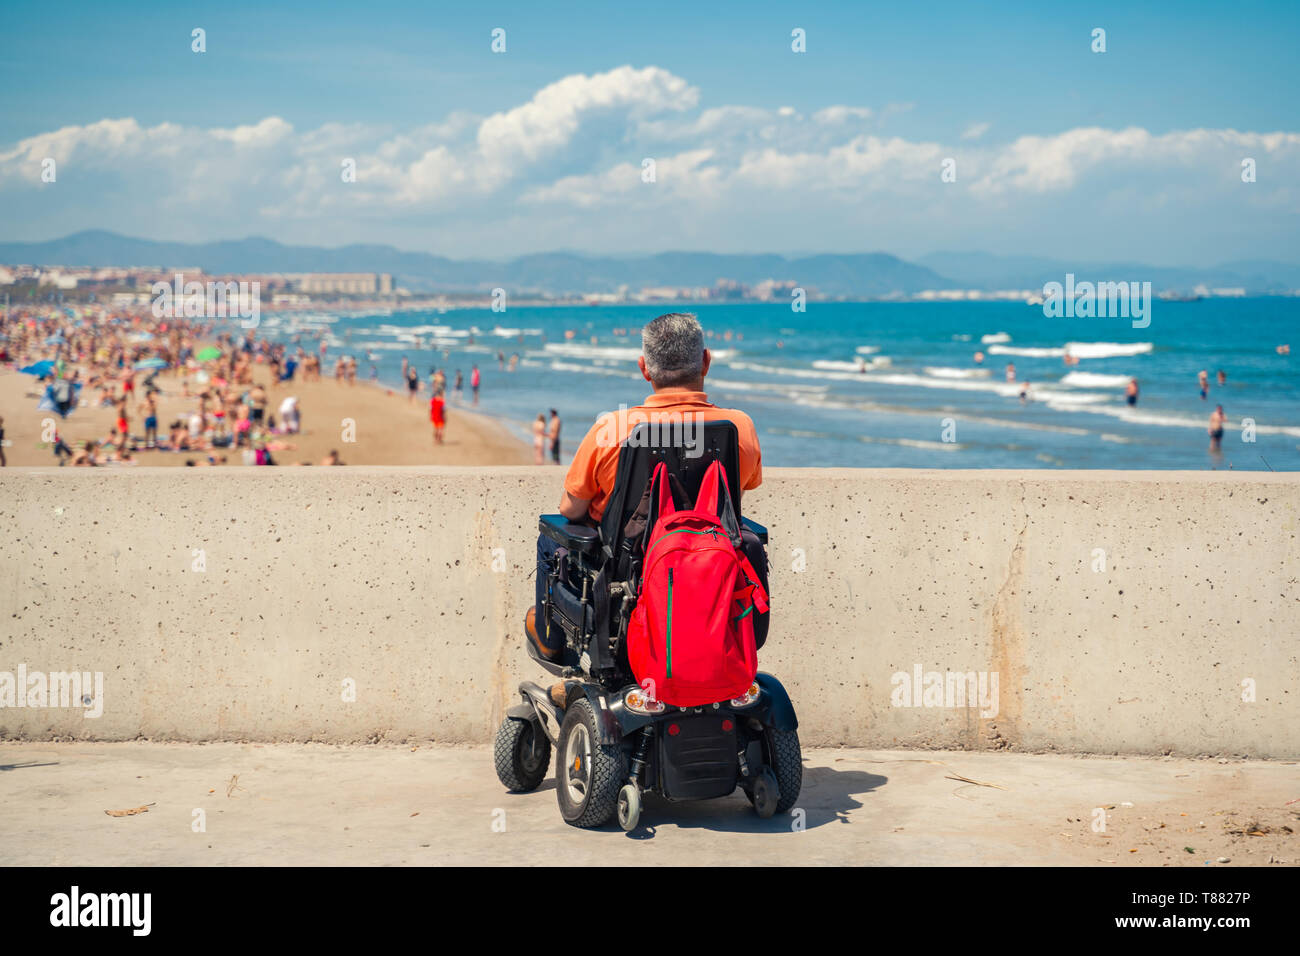 Lonely man on electric wheelchair looking  at the beach. Disabled person at the beach. - Stock Image